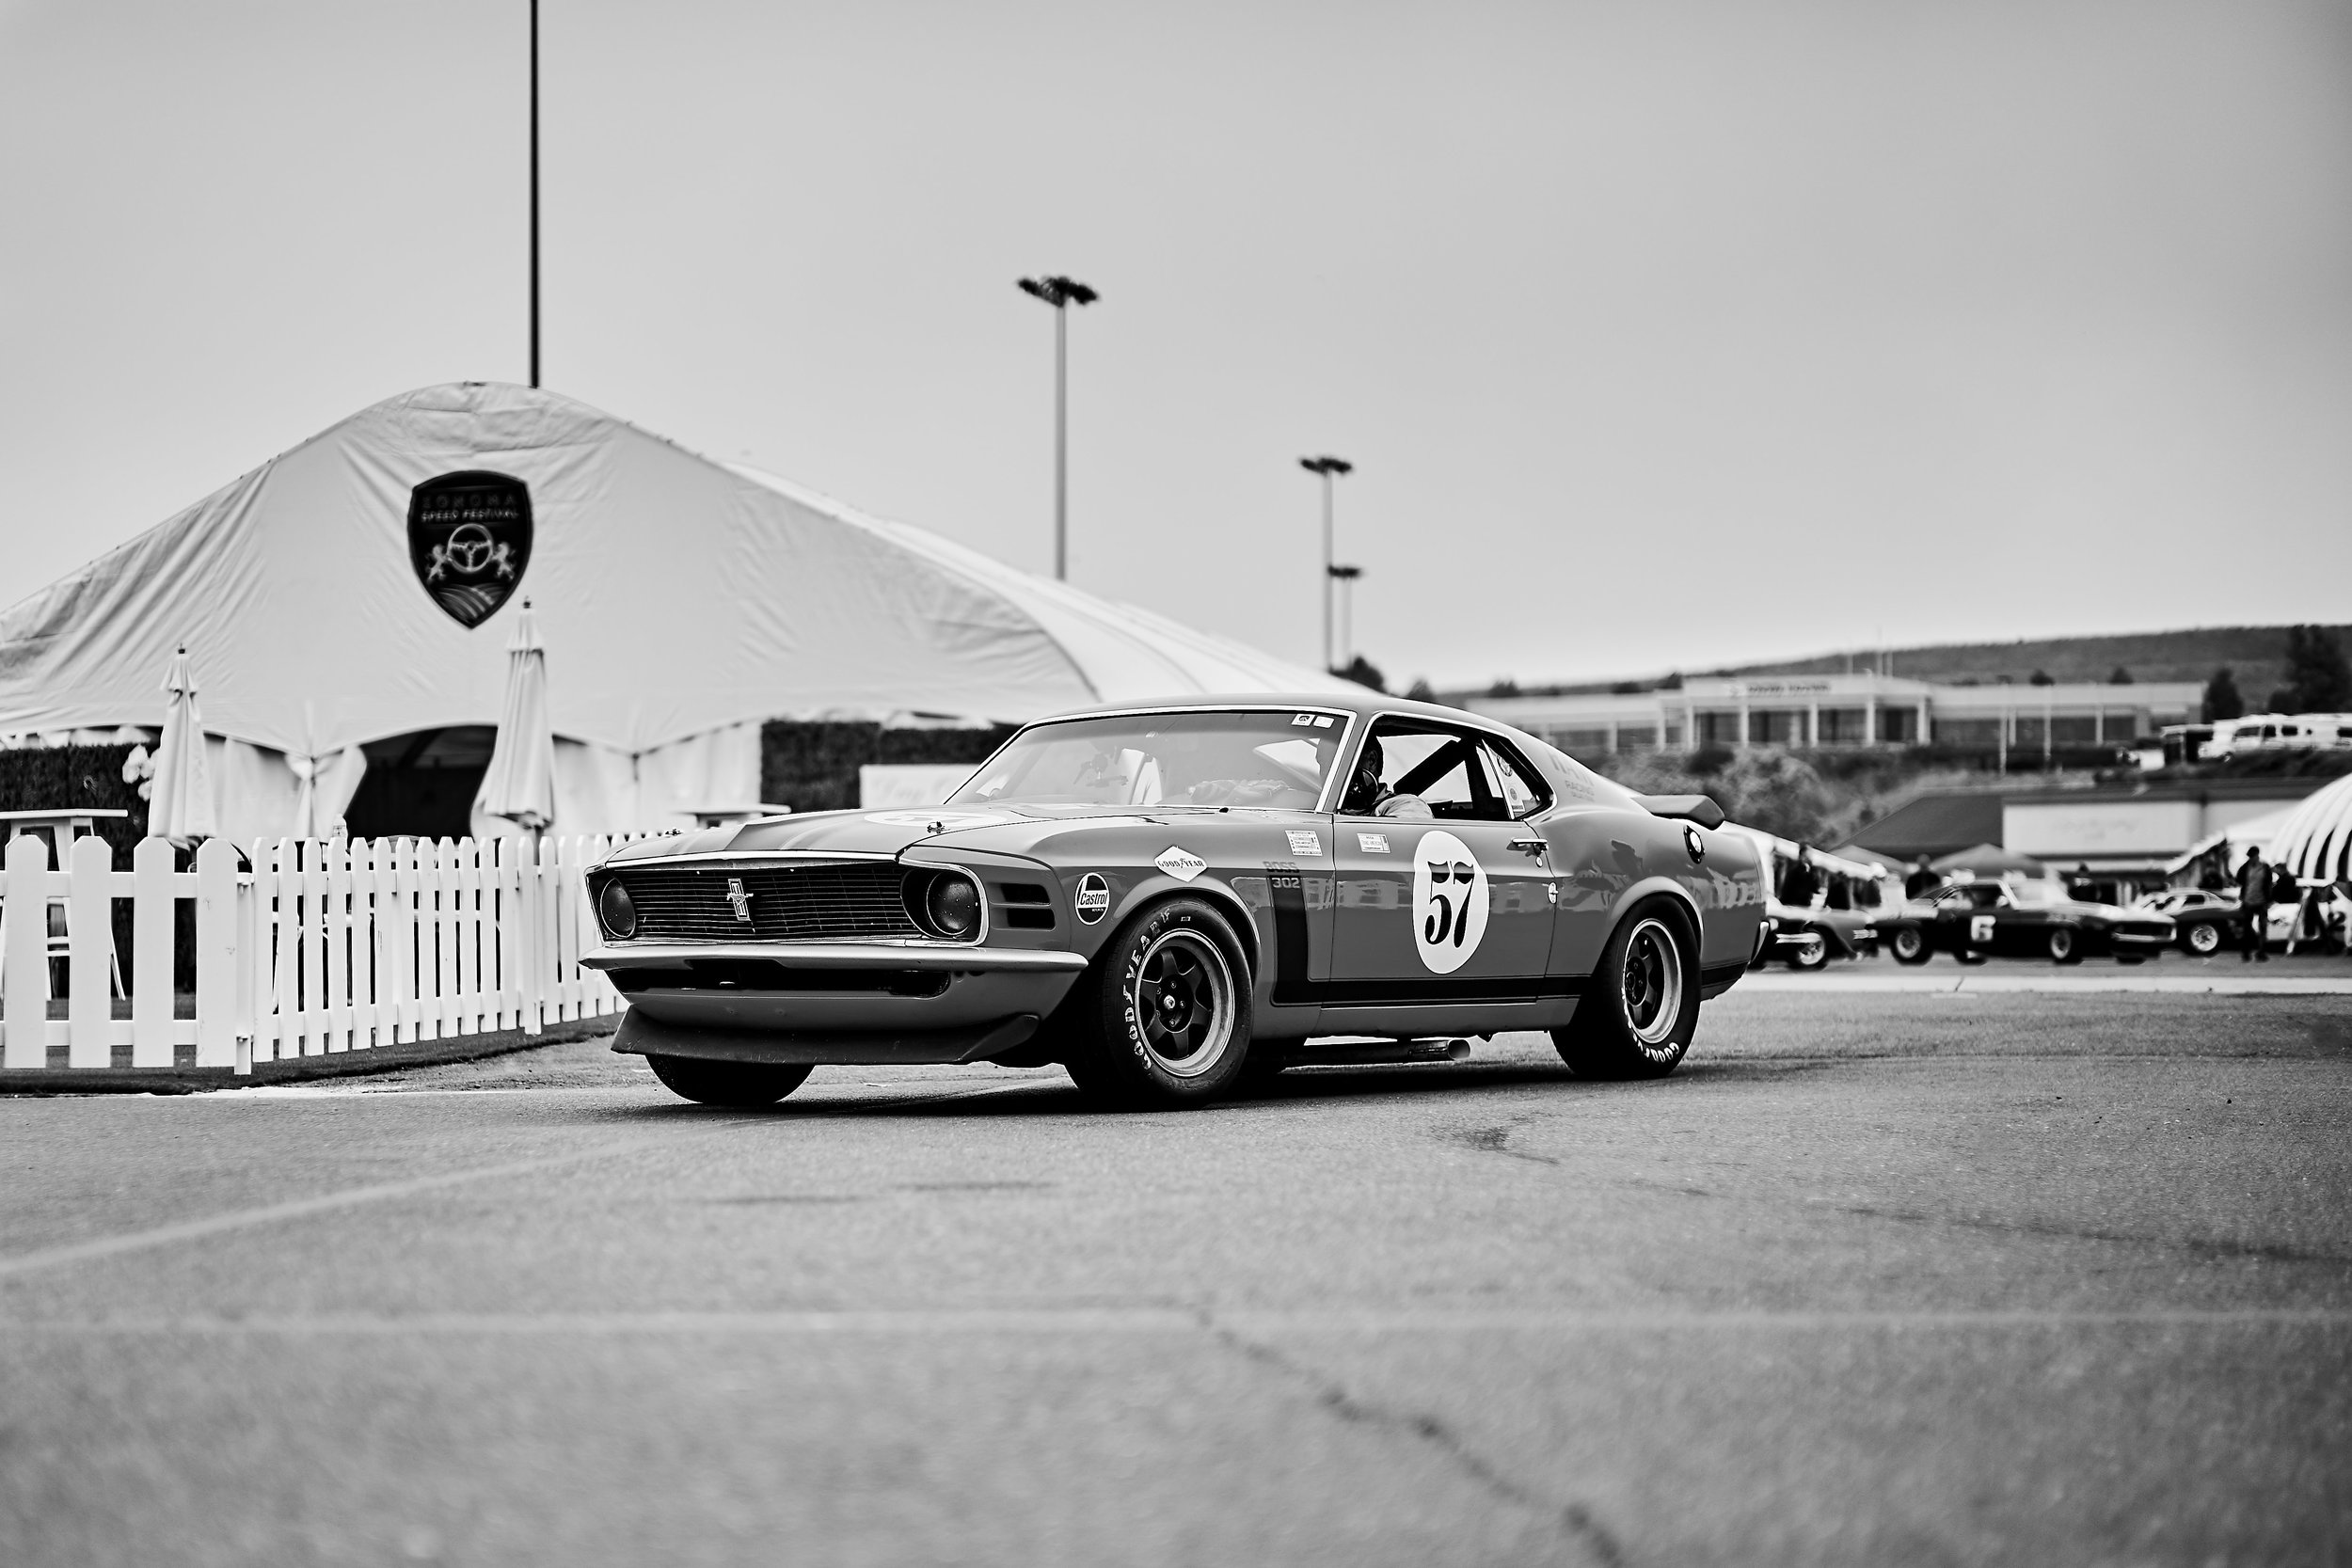 1970 Ford Boss 302 / Forrest Straight